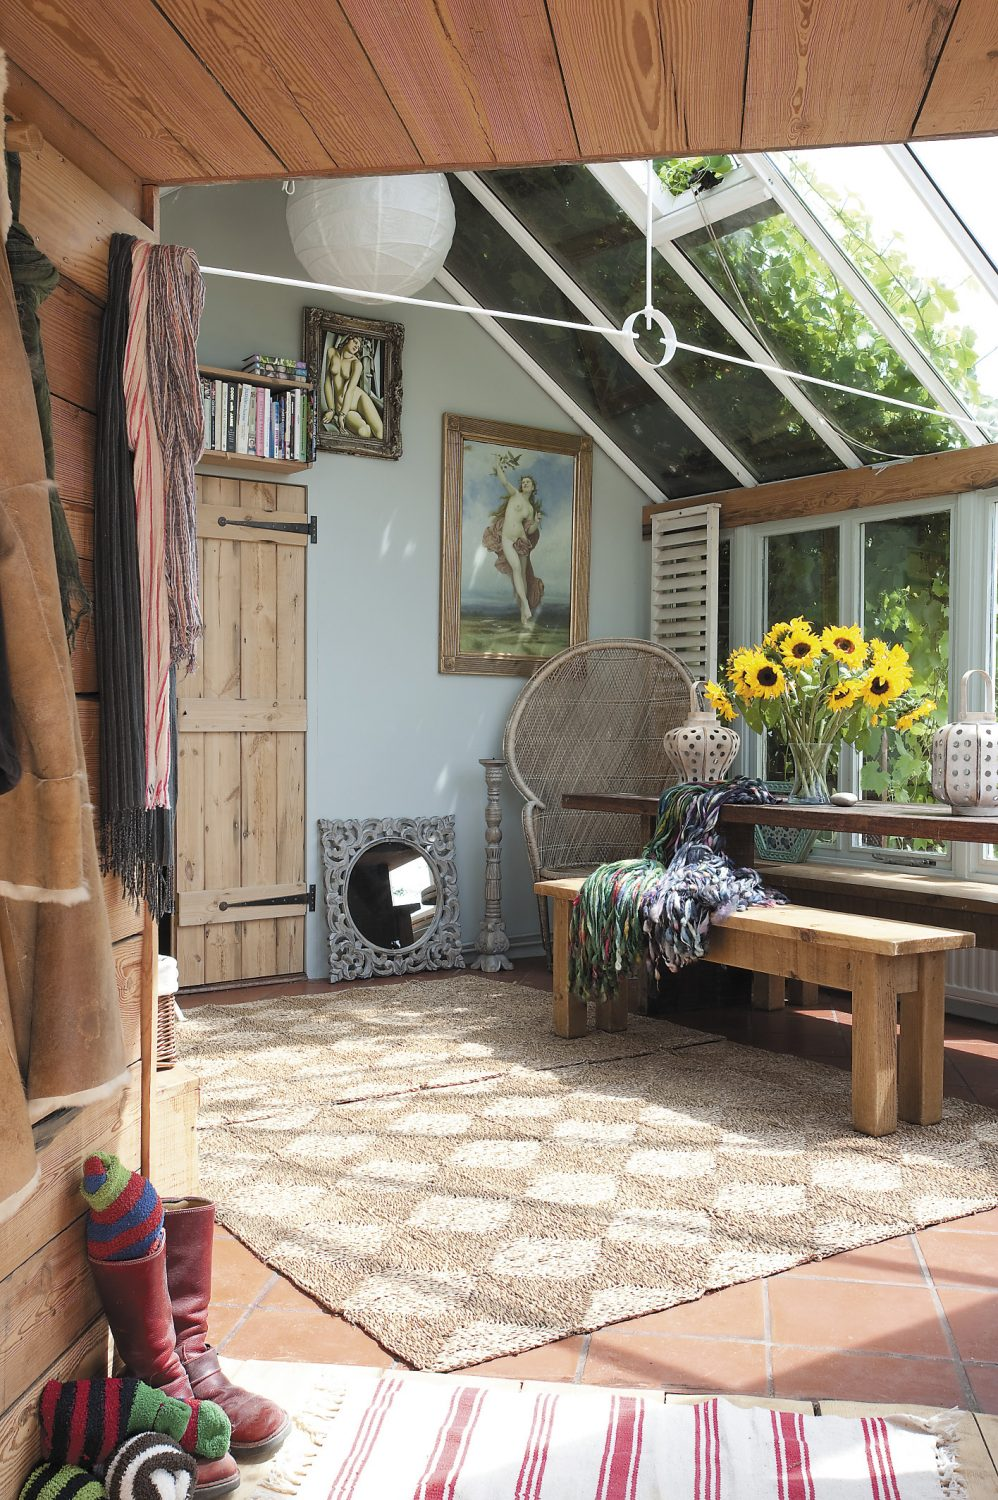 The small passage that connects the yurt to the conservatory is clad in reclaimed timber from Symonds Salvage in Bethersden